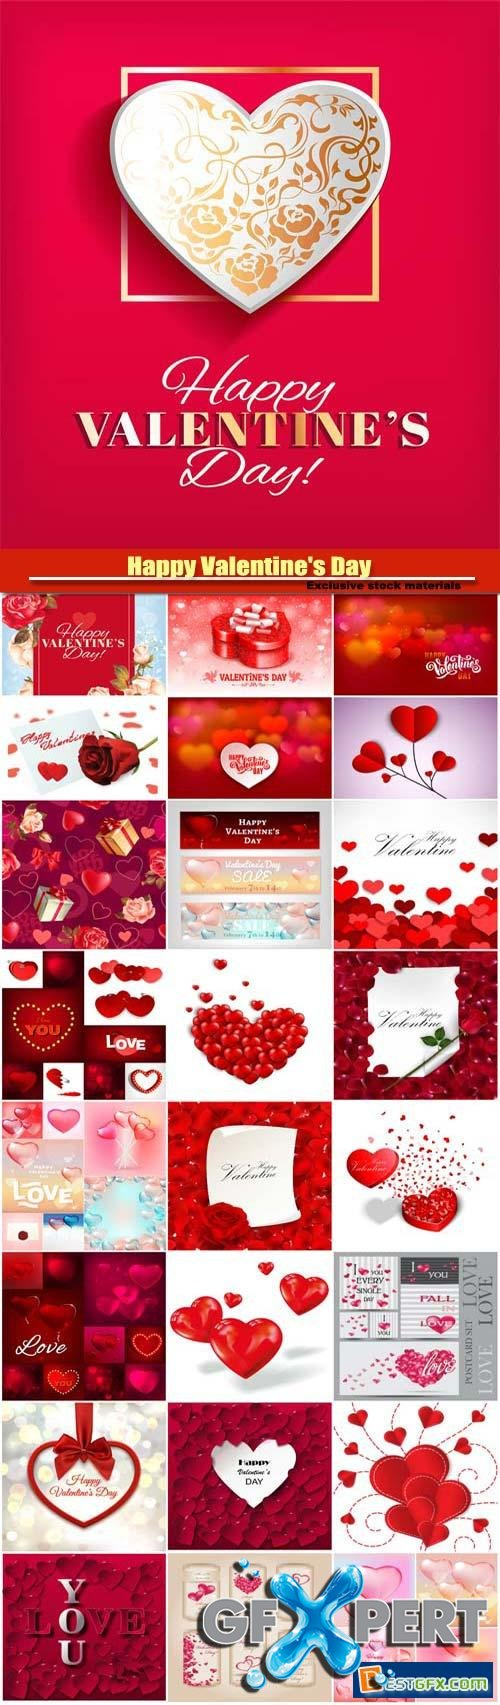 Happy Valentine's Day vector, hearts, romance, love #18